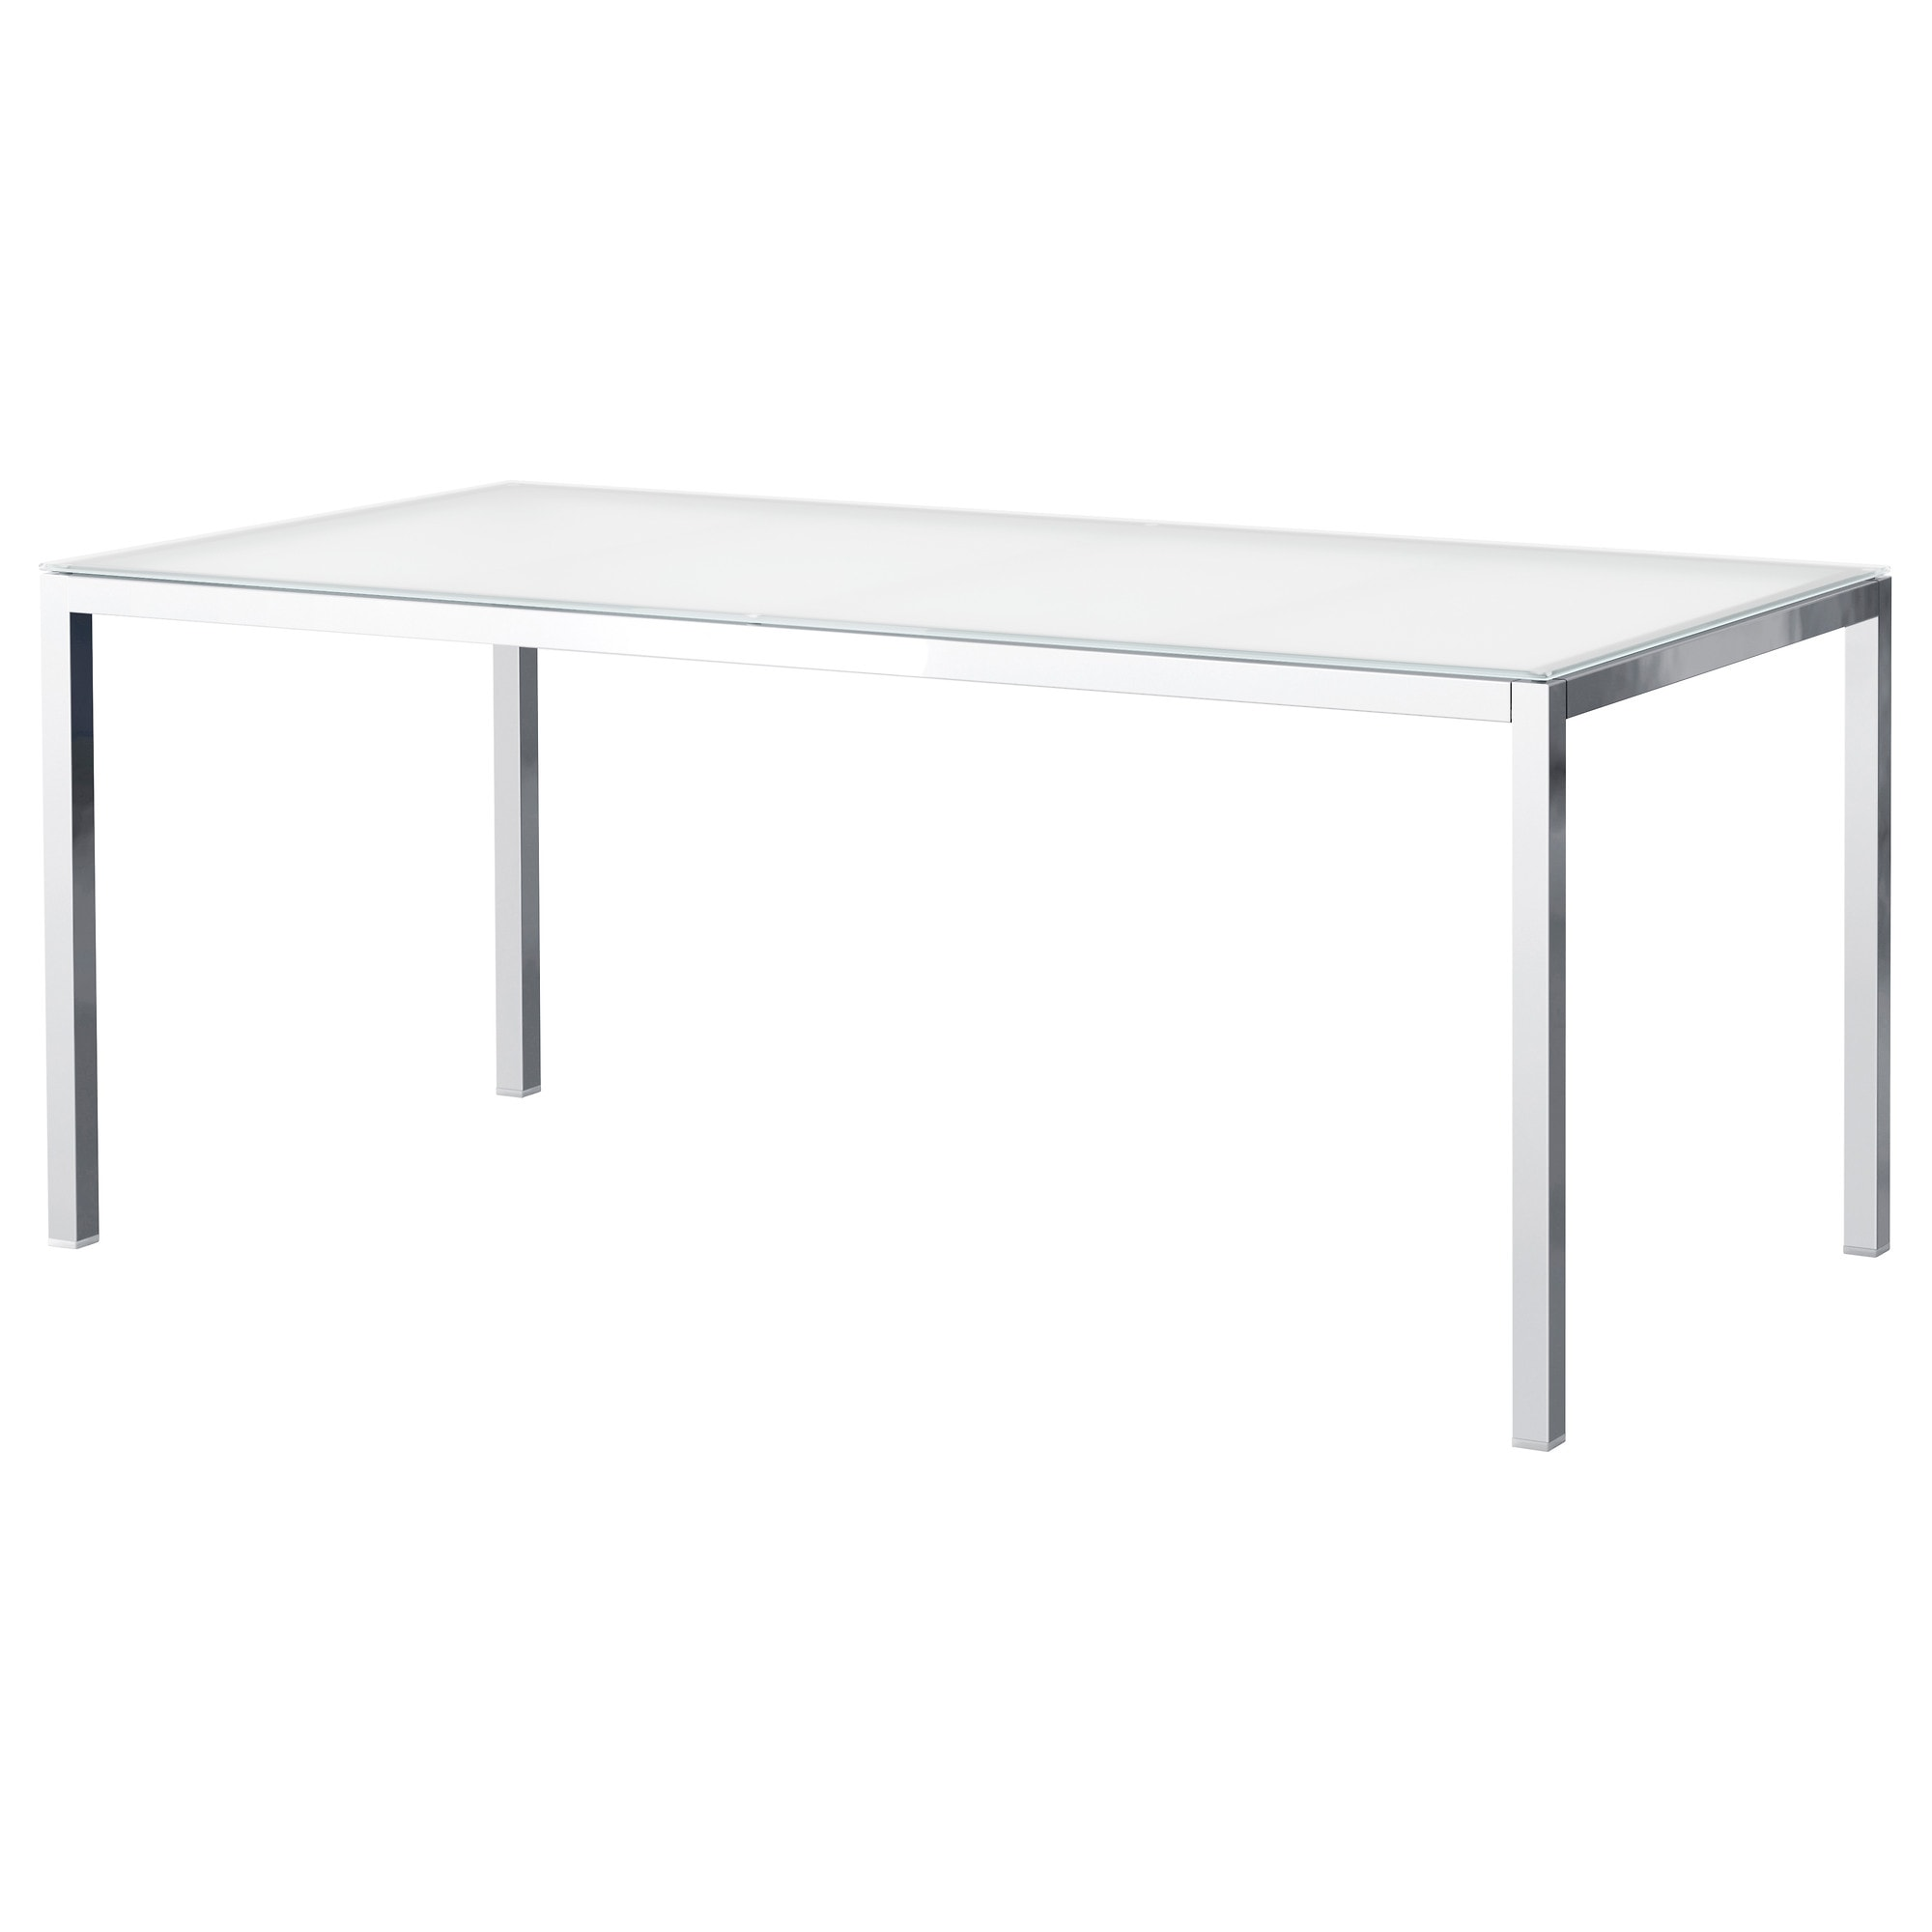 Table en verre salle a manger ikea table de lit for Table manger ikea